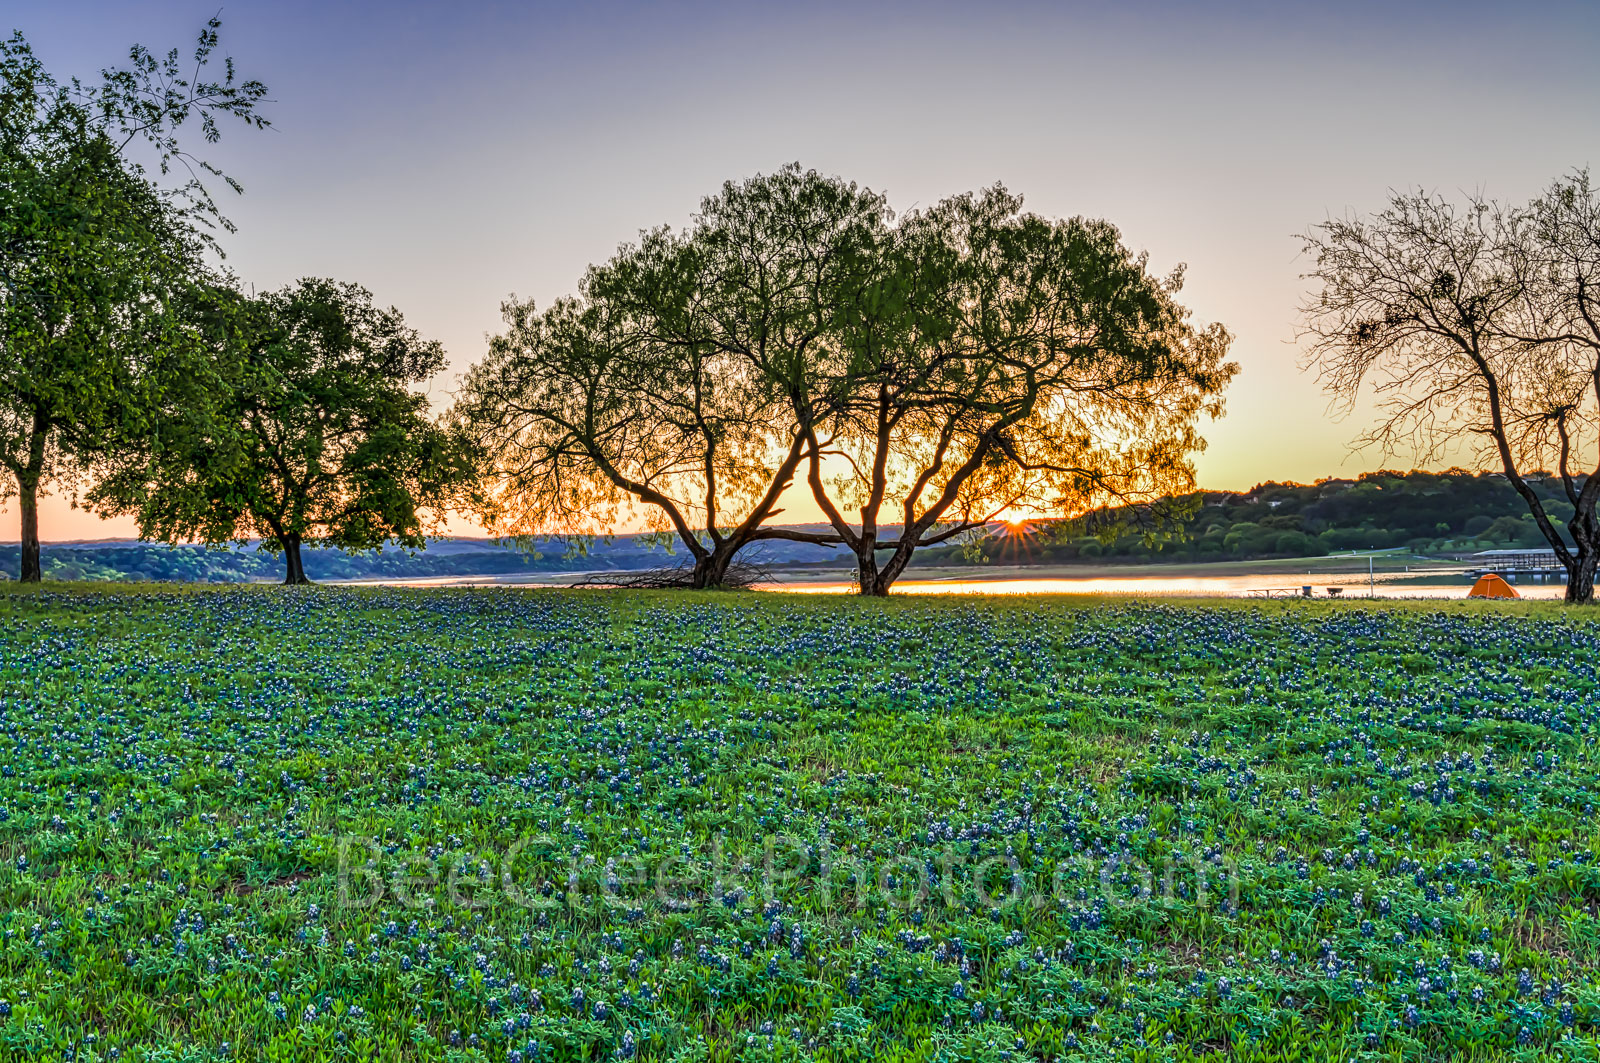 Bluebonnets, image of blueblonnets, pictures of bluebonnets, springtime, sunrise, Texas hill country, sun rays, field of bluebonnets, wildflower, water, river, tents, travel,lifestyle, Lady Bird, High, photo